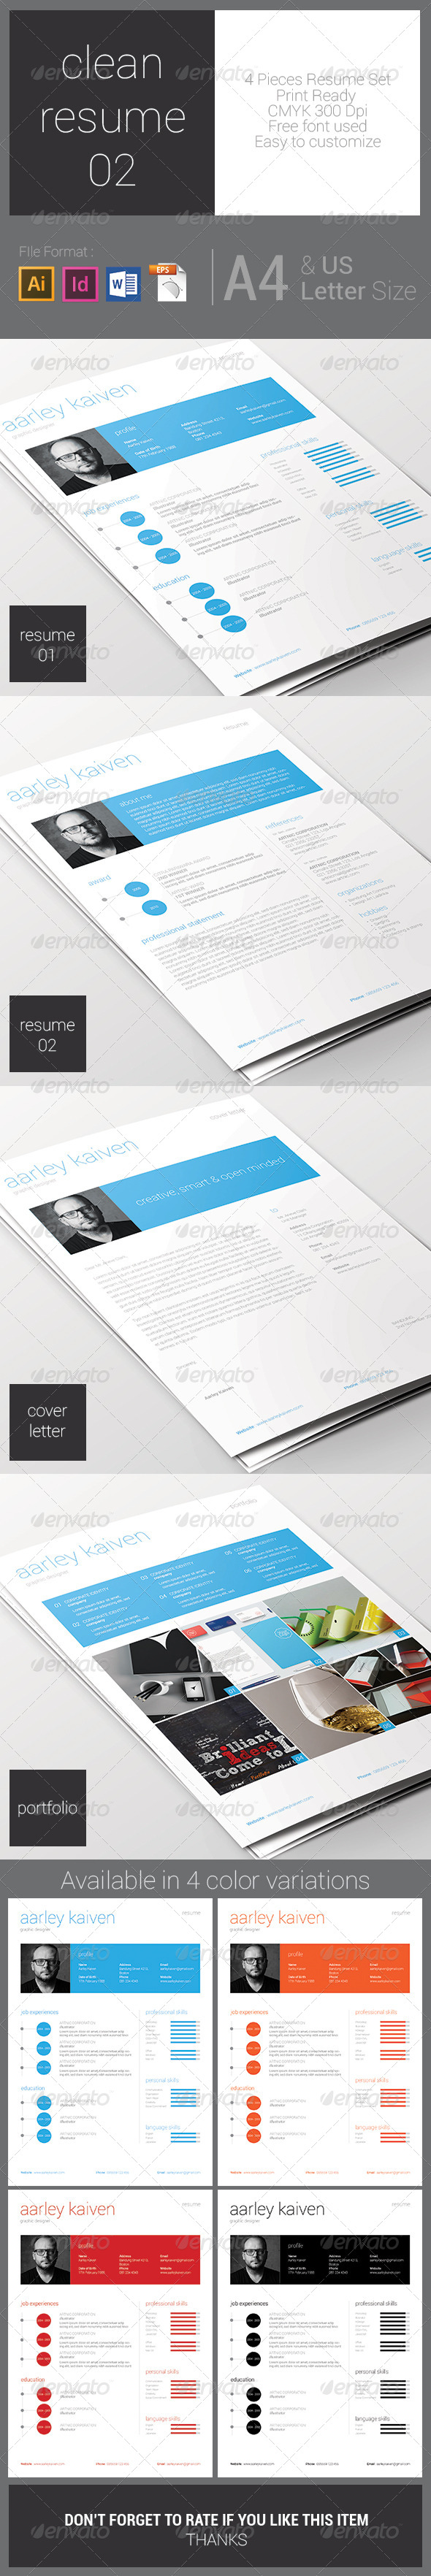 GraphicRiver Clean Resume Set 02 7618968